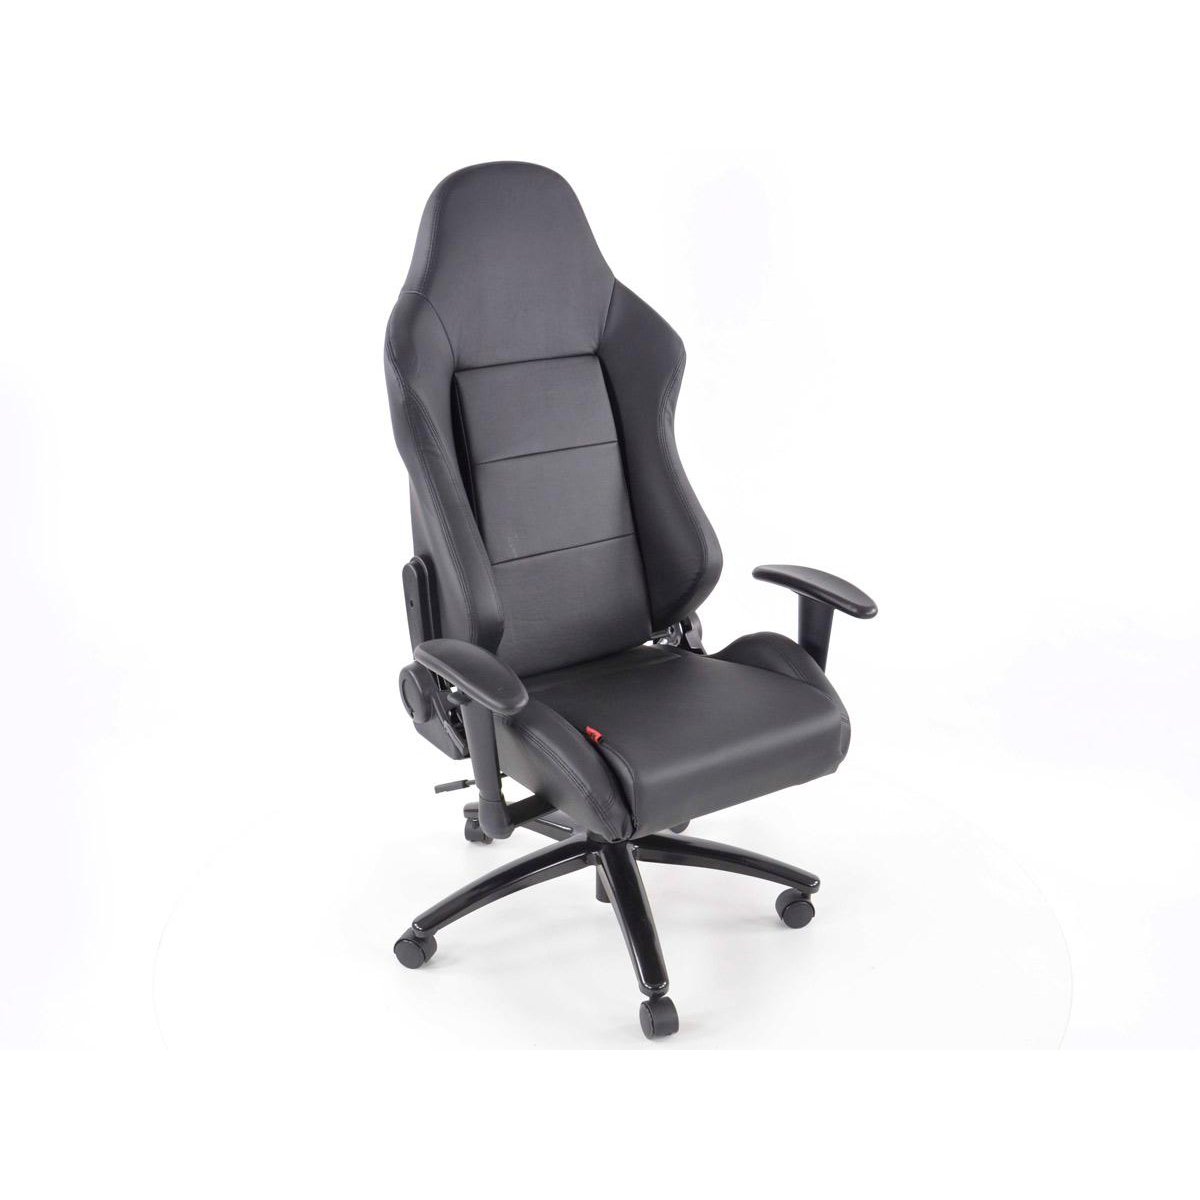 FK Automotive Race Director Black Racing Office Chair GSM Sport Seats